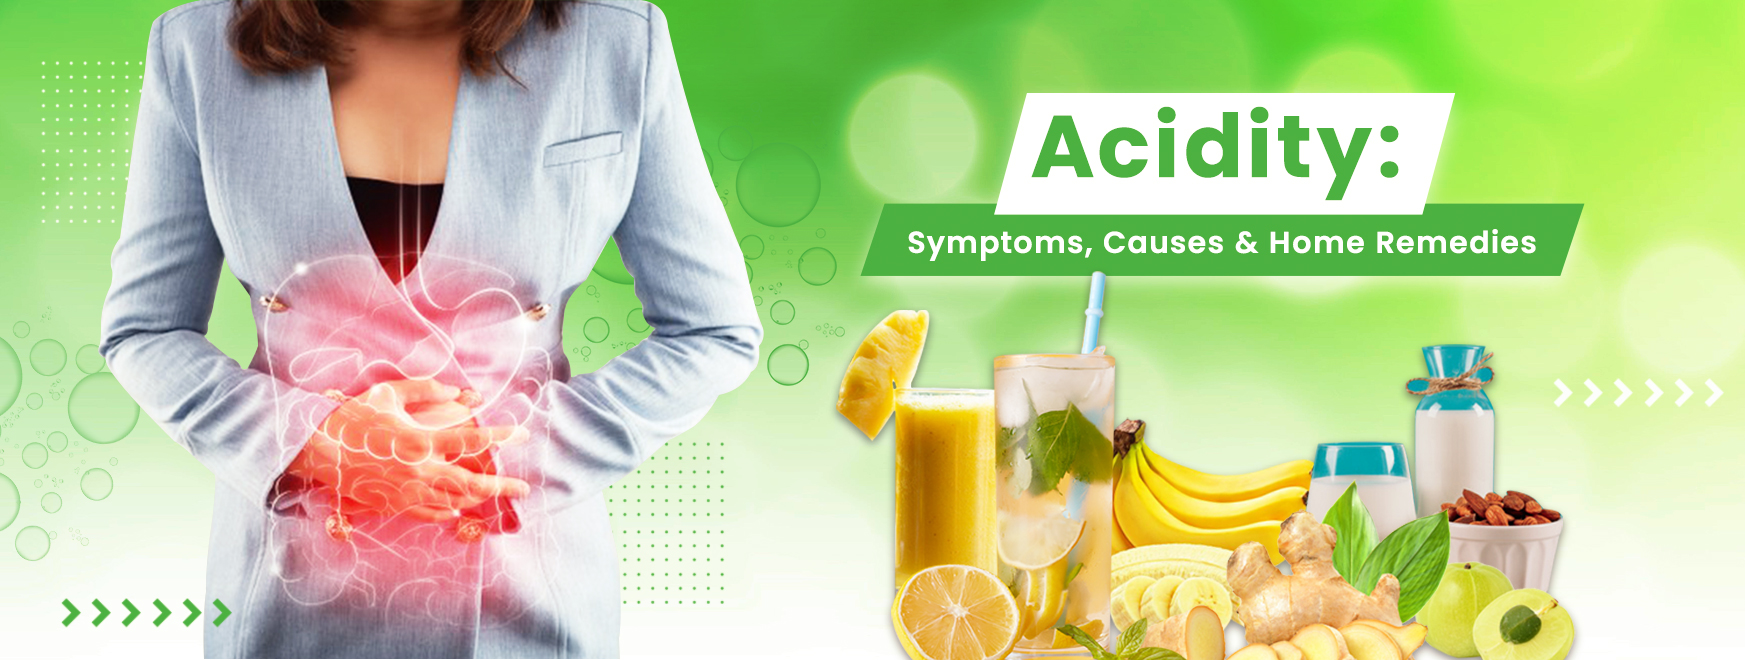 Acidity: Symptoms, Causes and Home Remedies